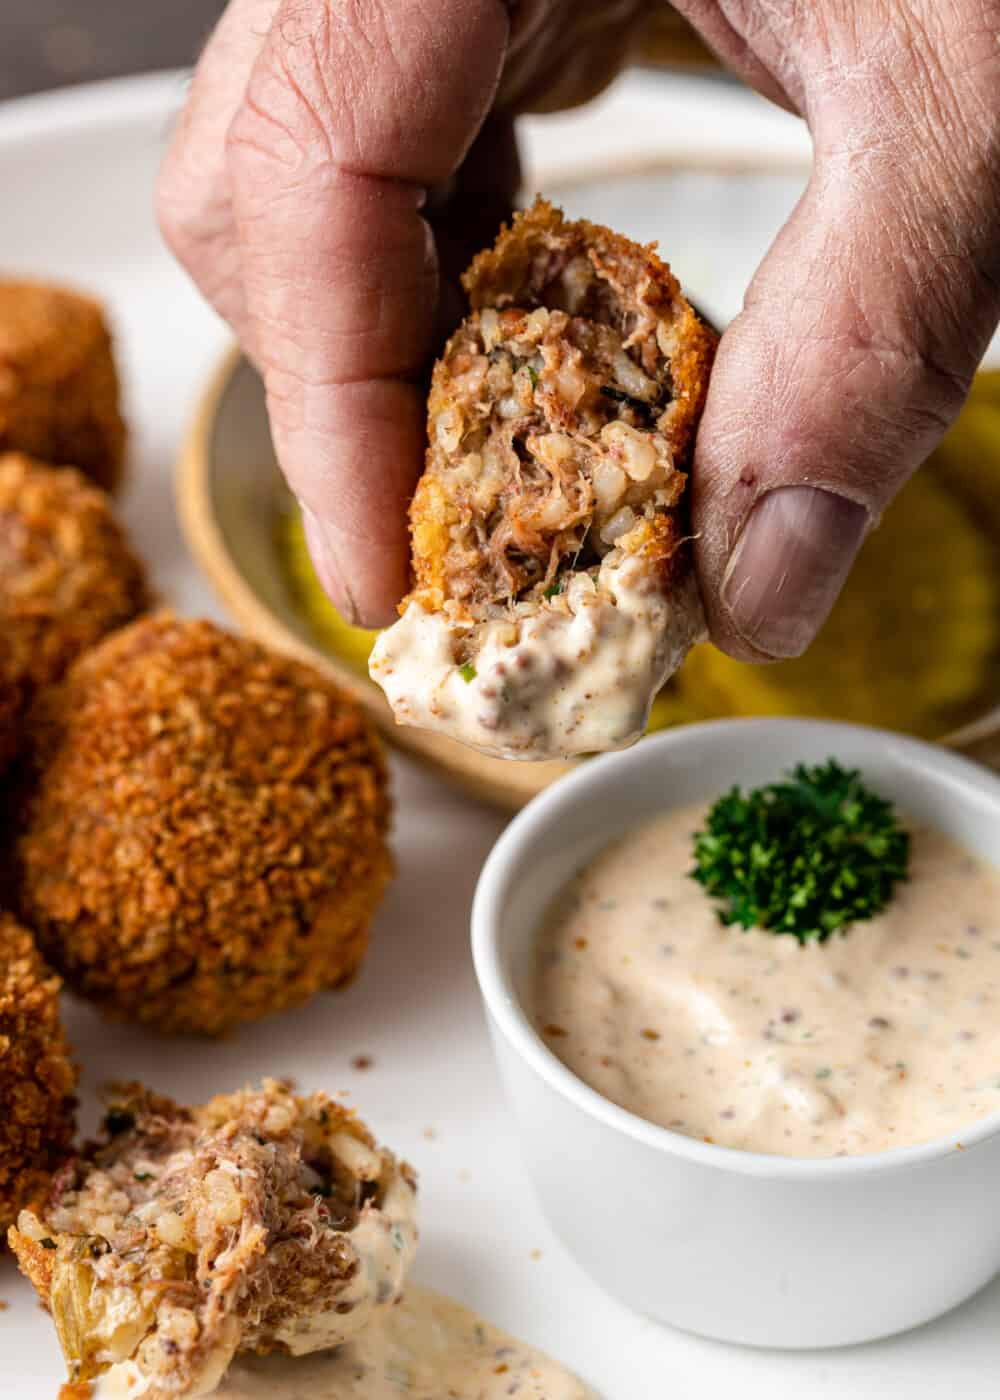 man's hand holding half of a boudin ball that's been dipped in Cajun remoulade